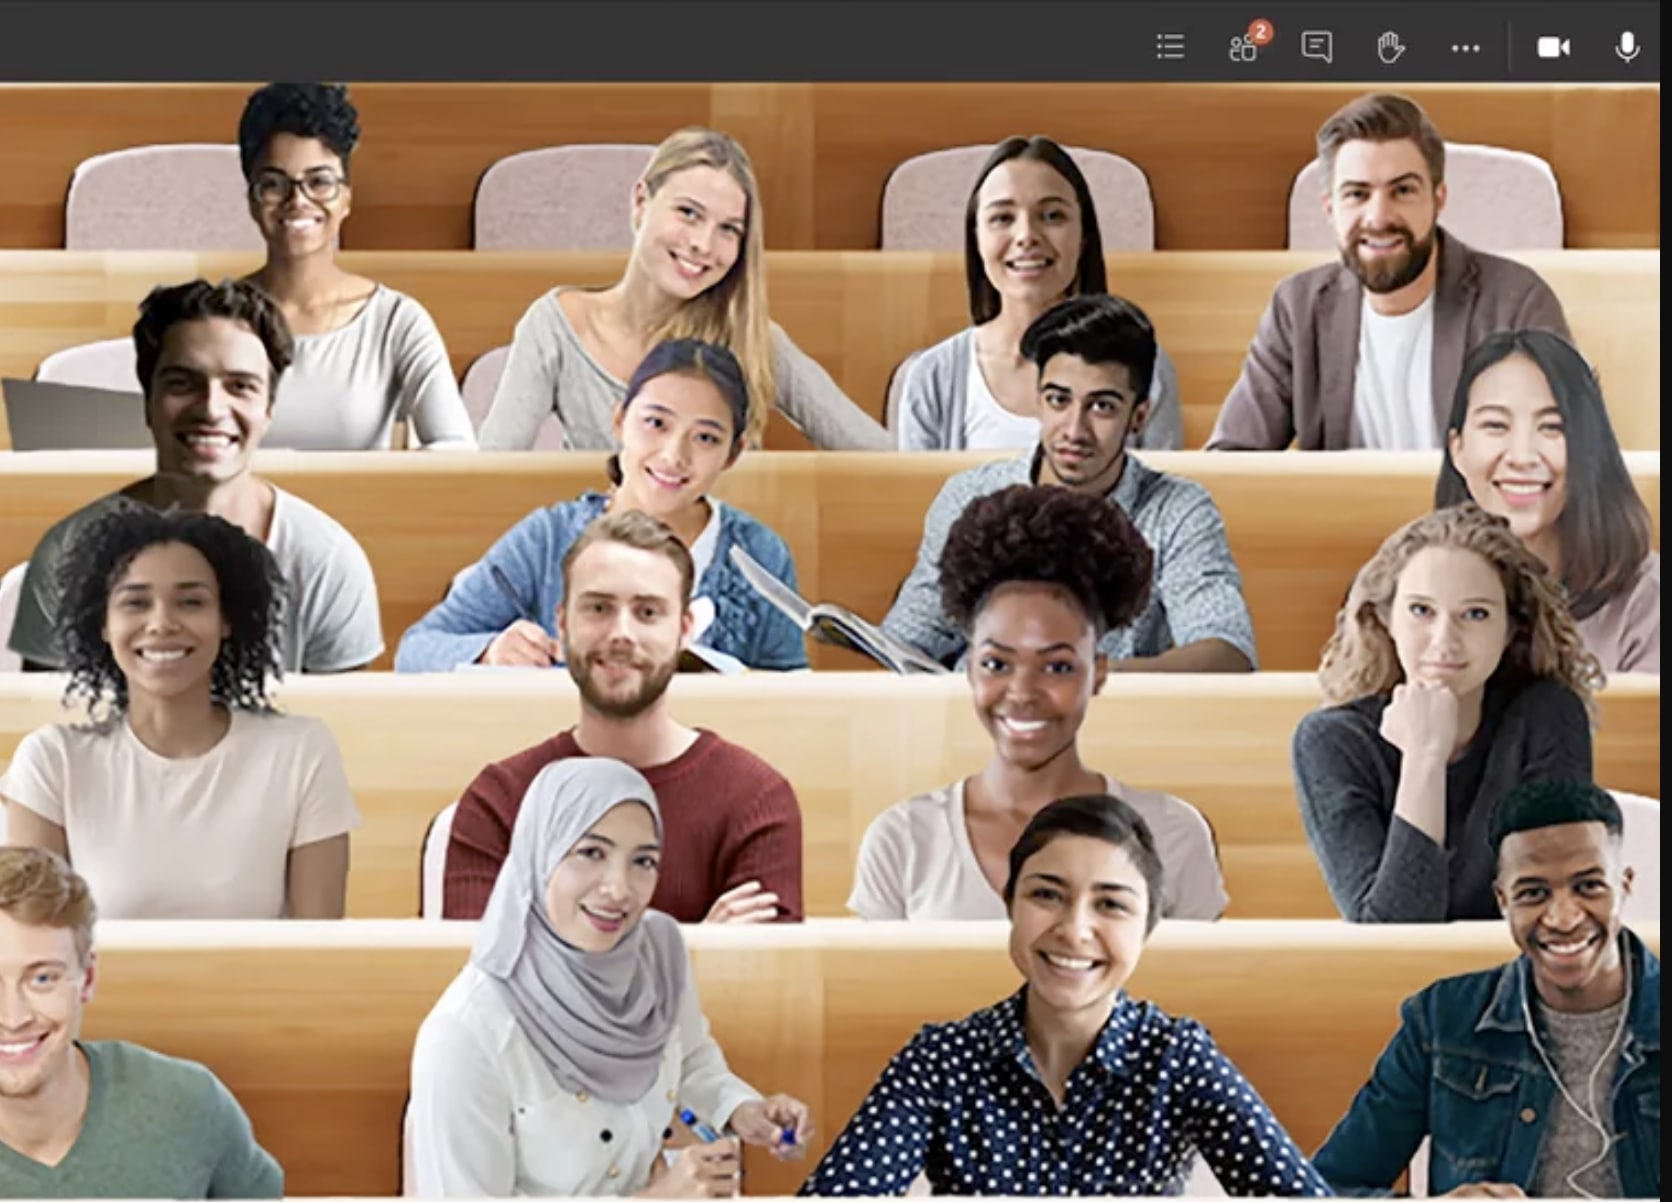 Microsoft's virtual auditorium style classroom in Teams